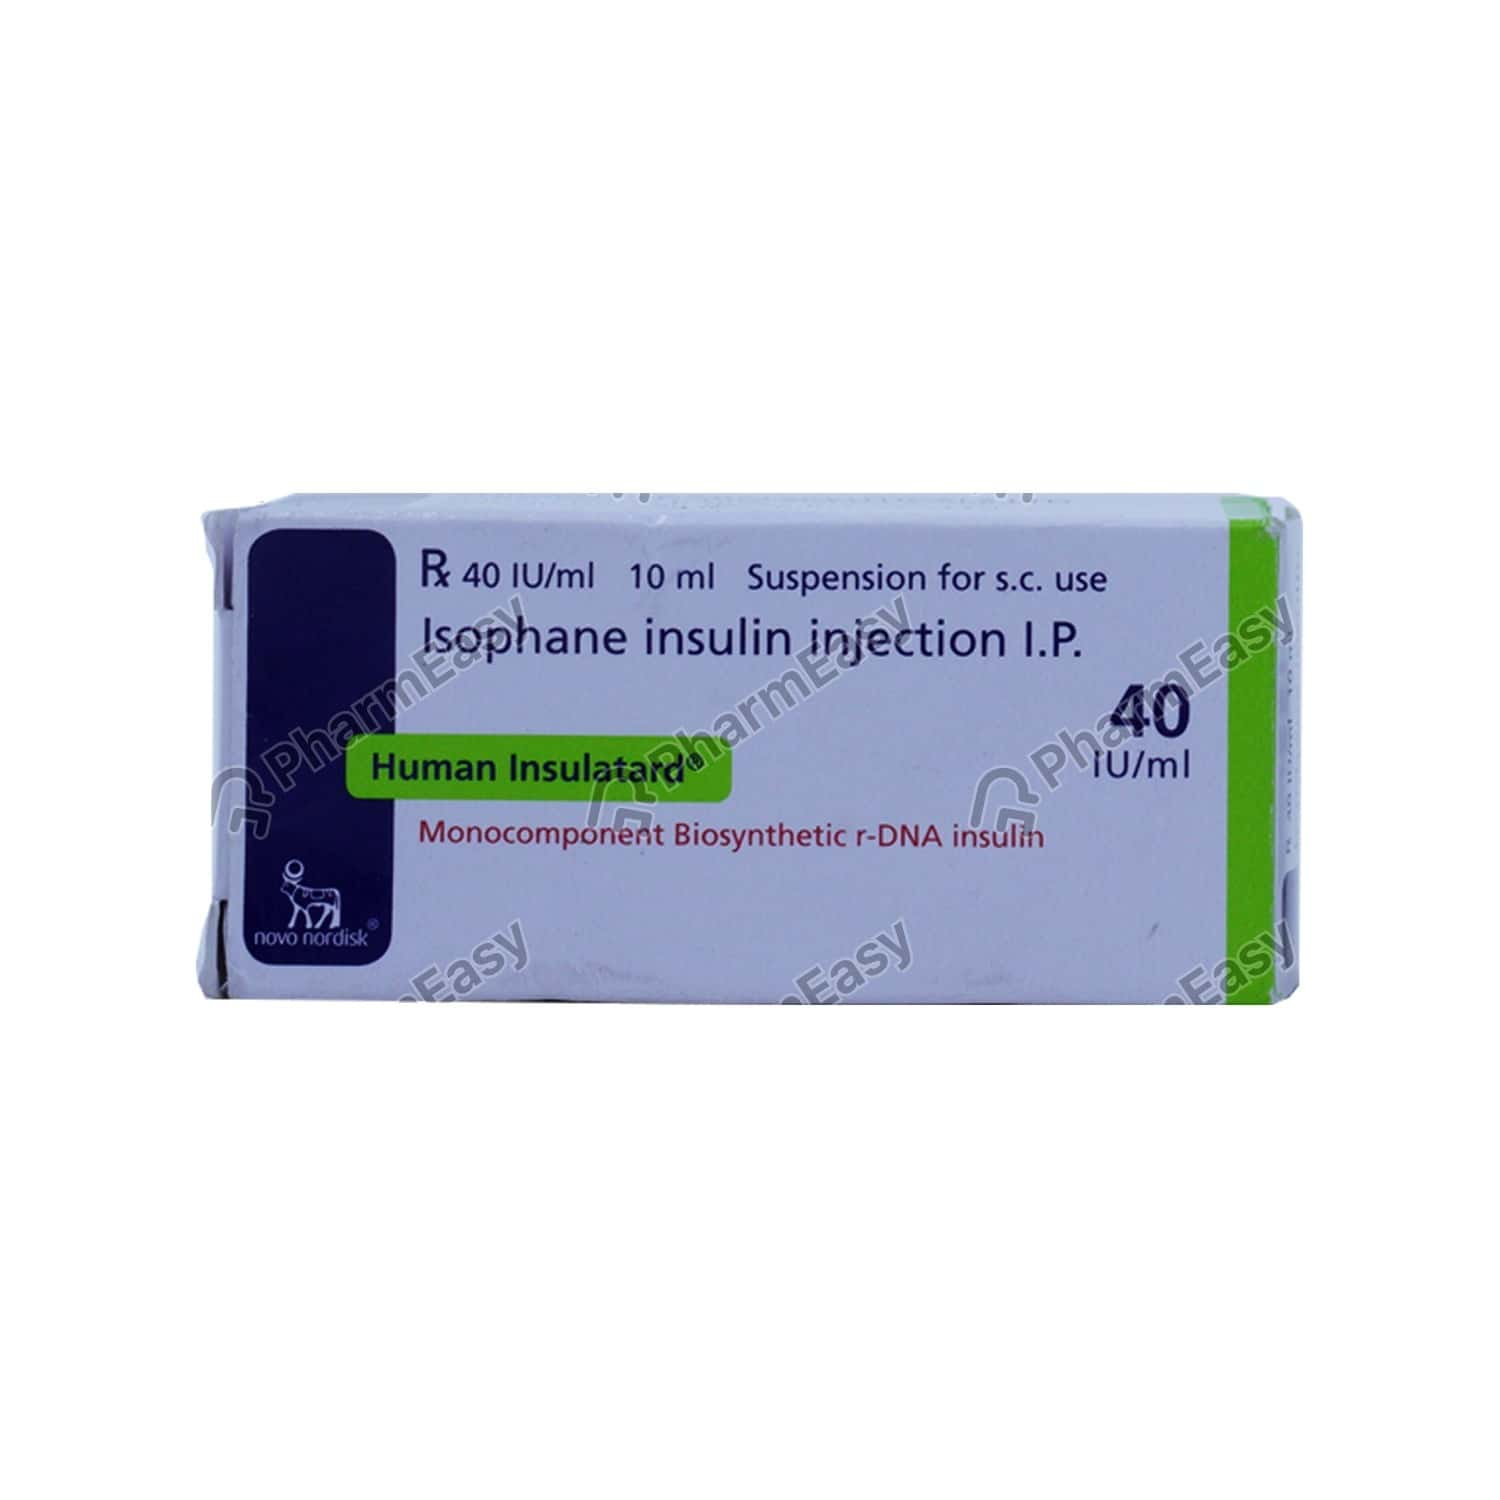 Human Insulatard 40iu Vial Of 10ml Suspension For Injection